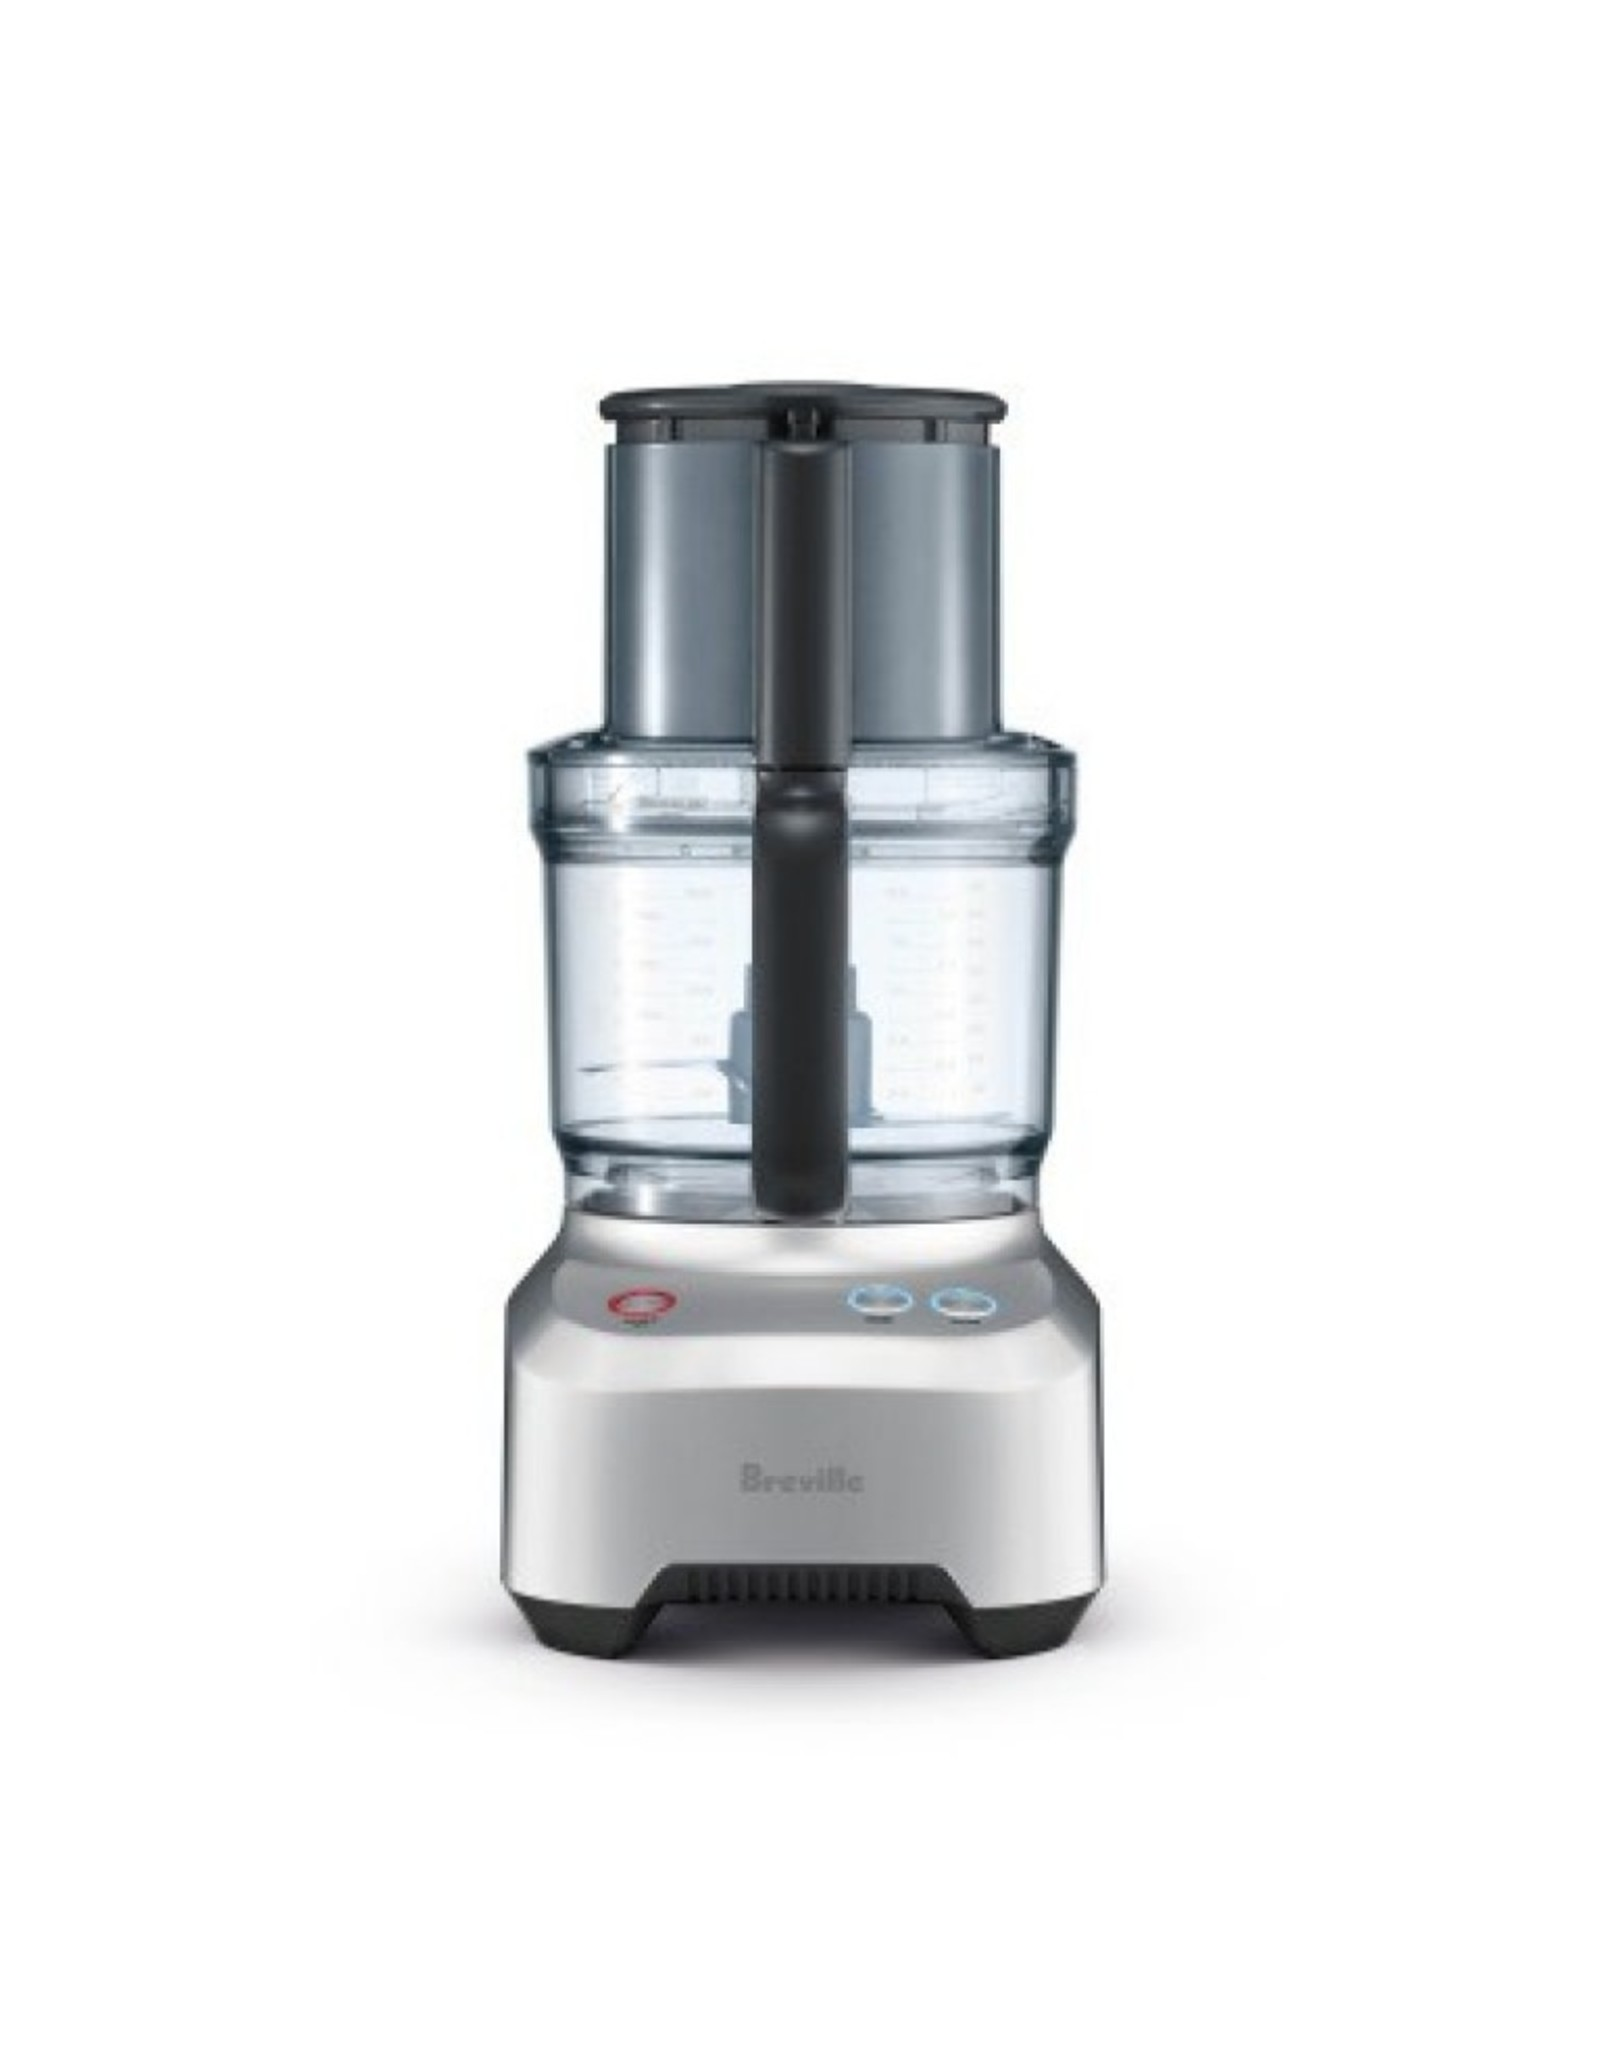 Breville Breville Sous Chef 12 - Food Processor